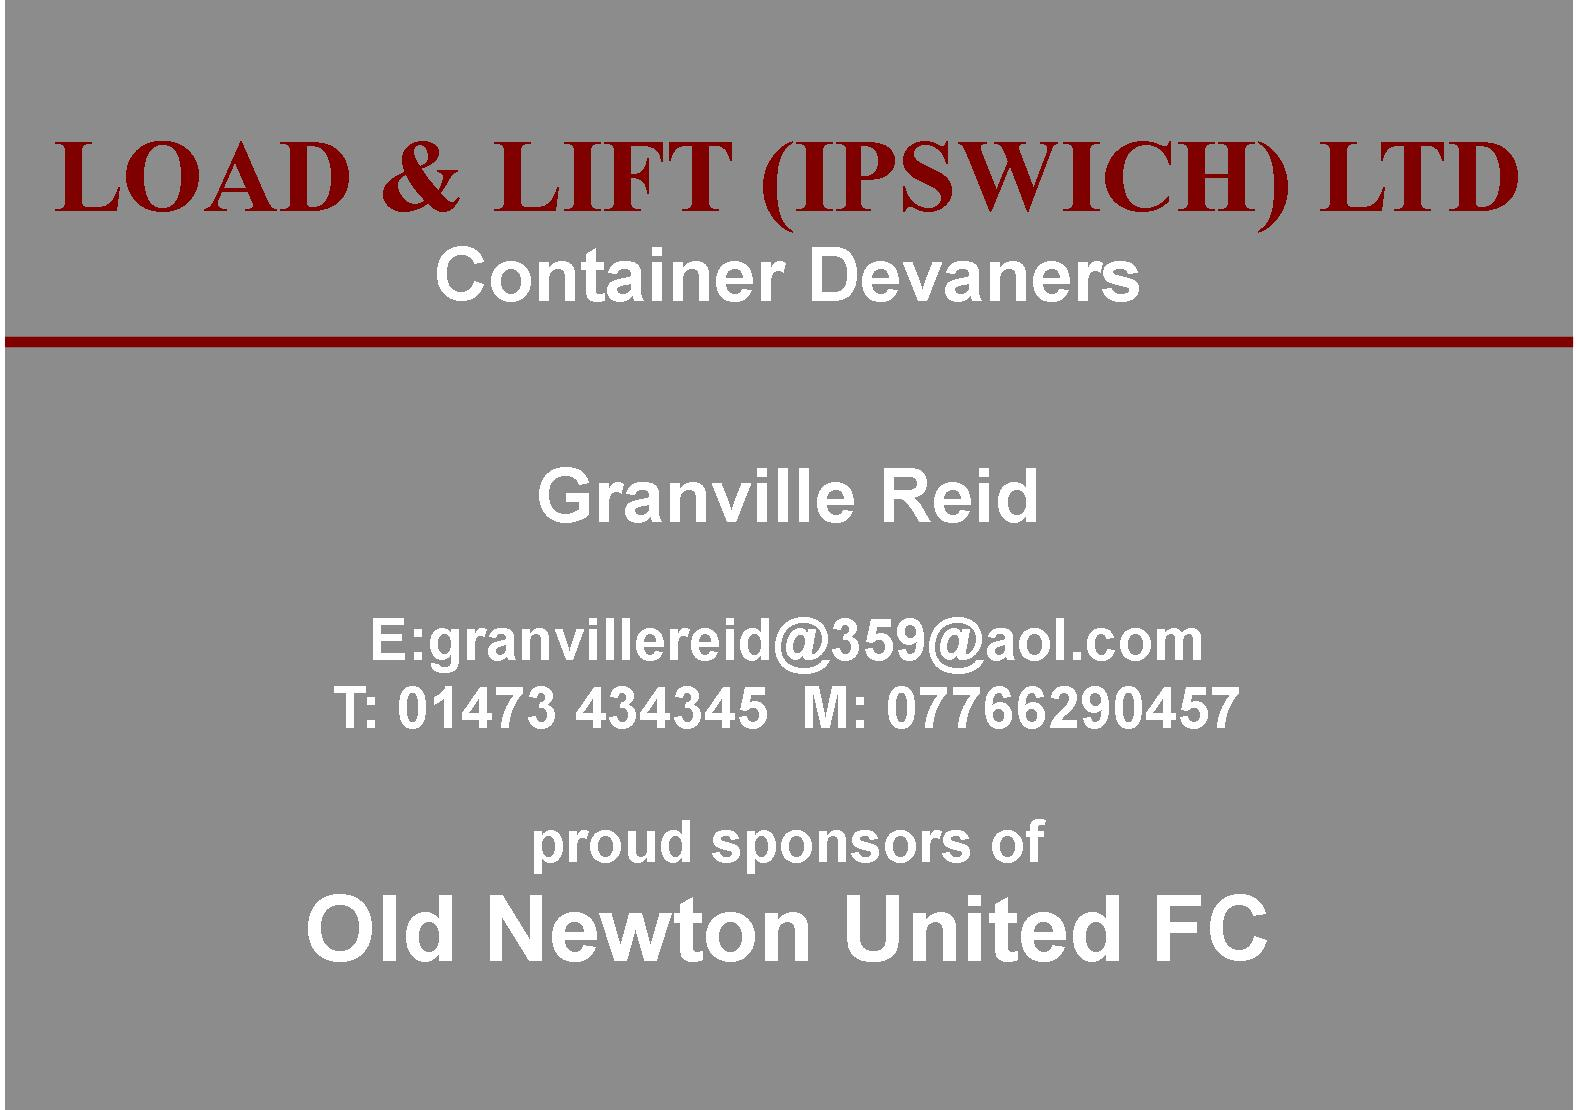 Load & Lift (Ipswich) Ltd